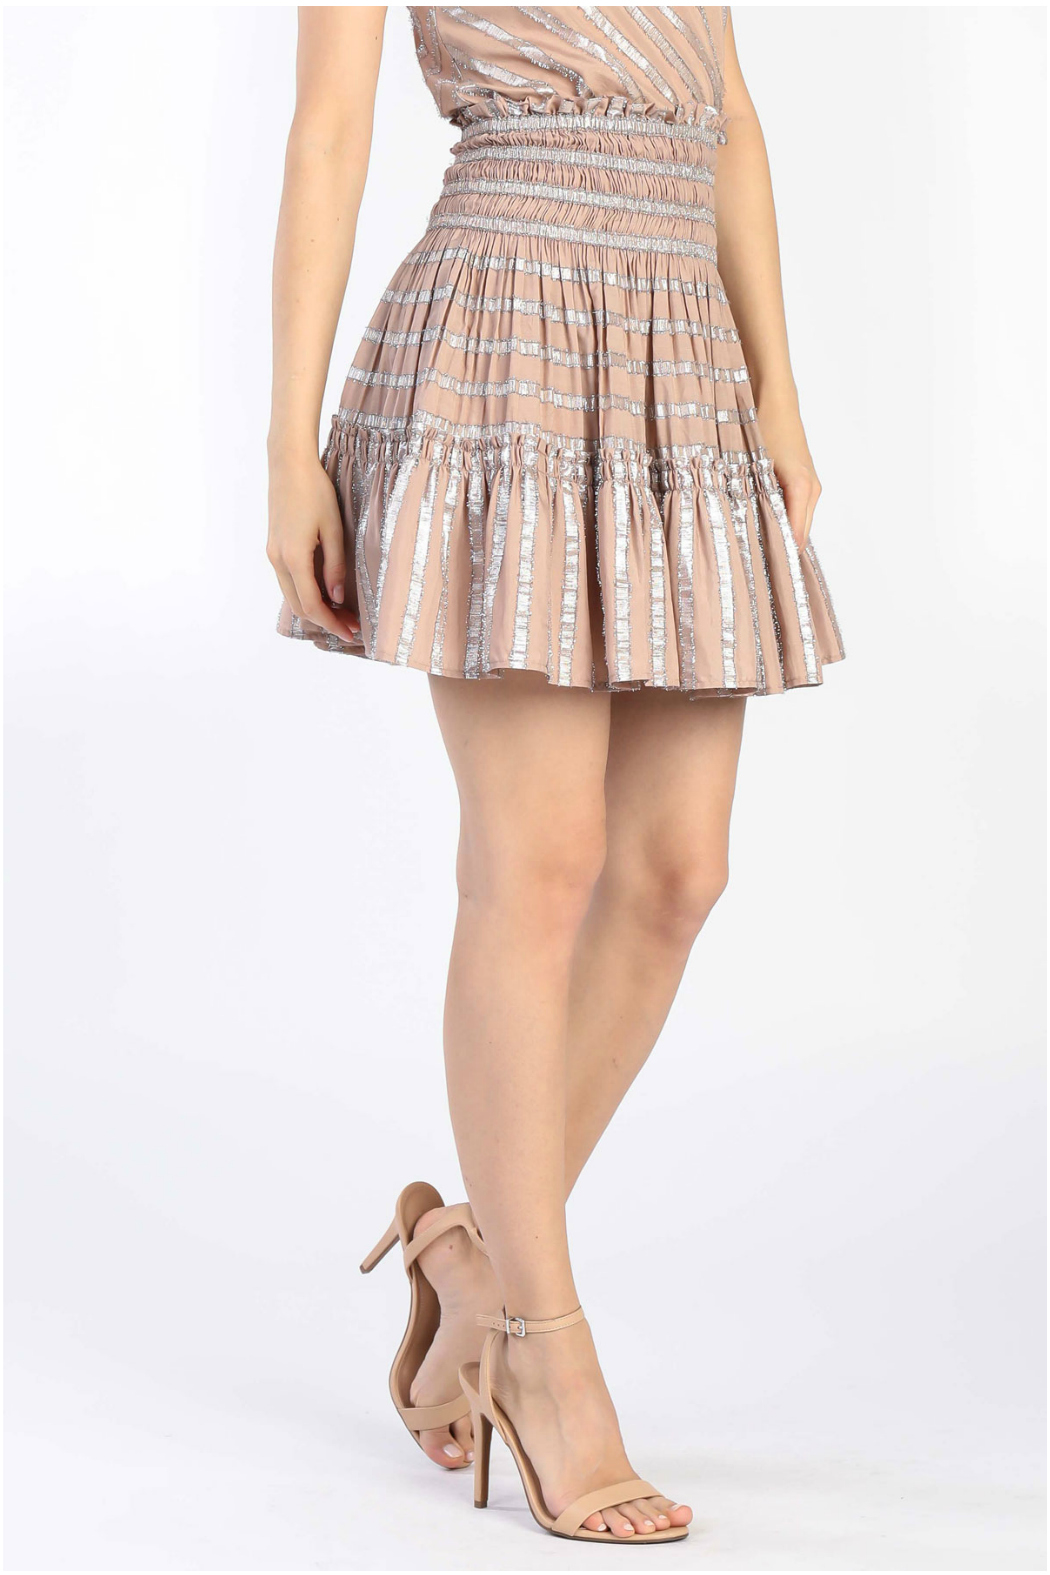 Current Air Smocked tiered short skirt - Main Image